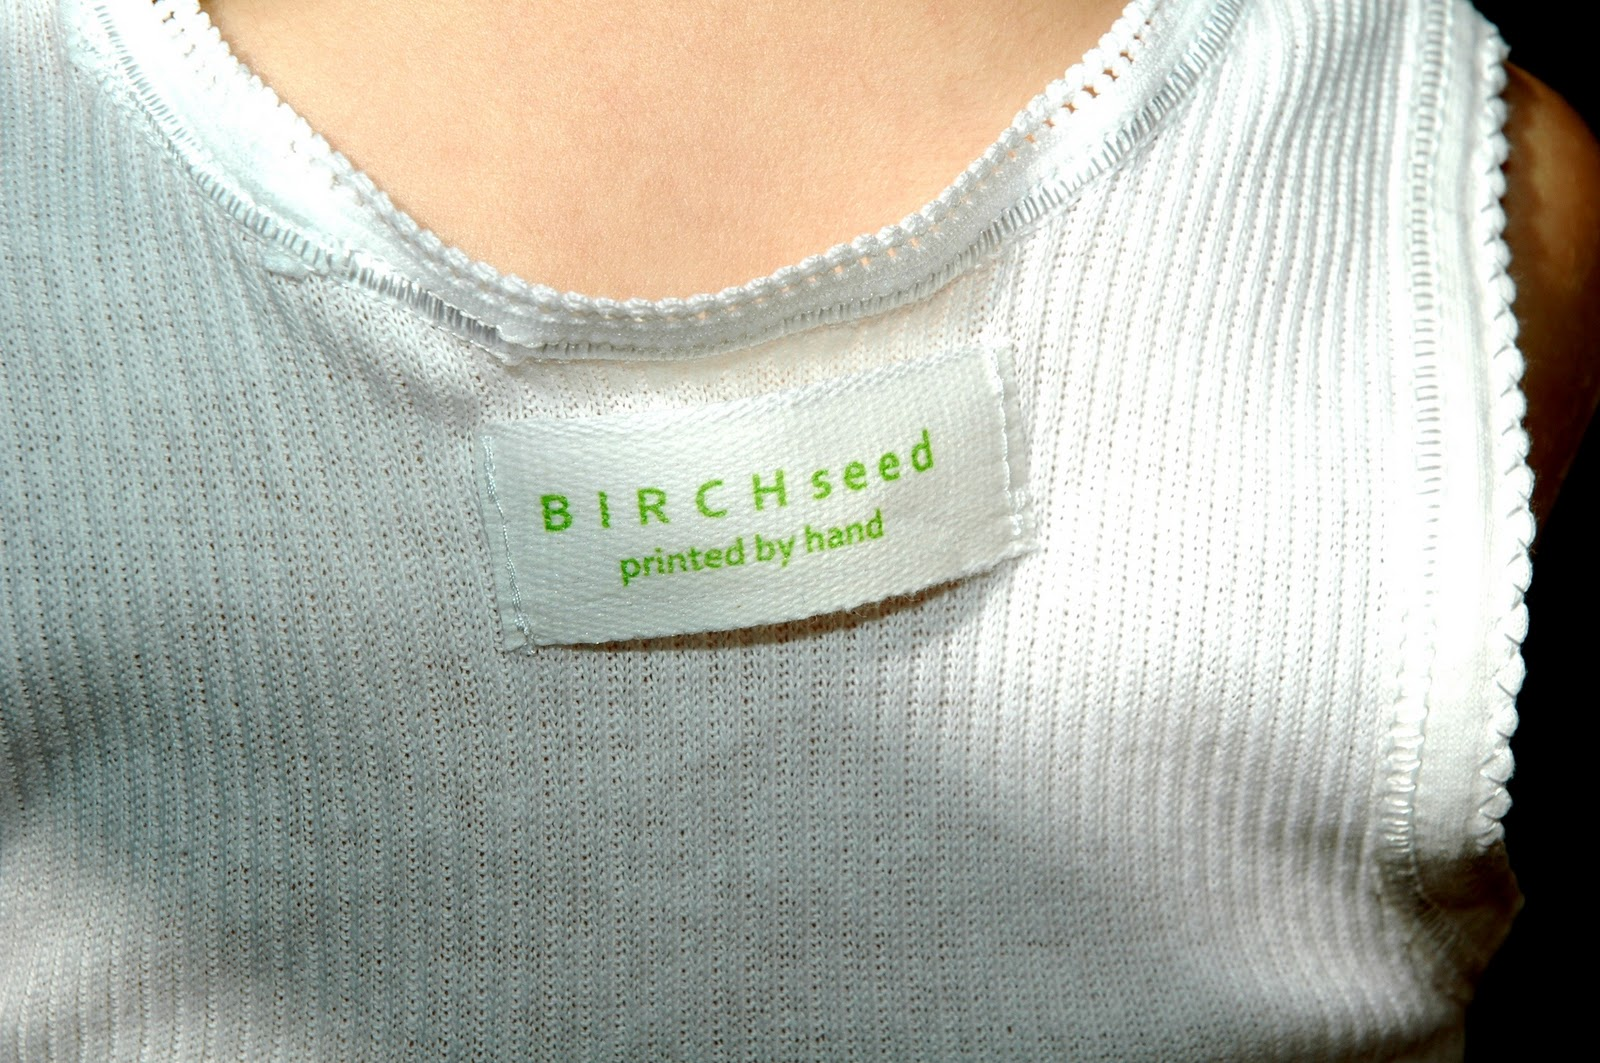 B I R C H S E D Printed By Hand Tutorial How To Make Home Made Cloth Labels For Clothes And Products